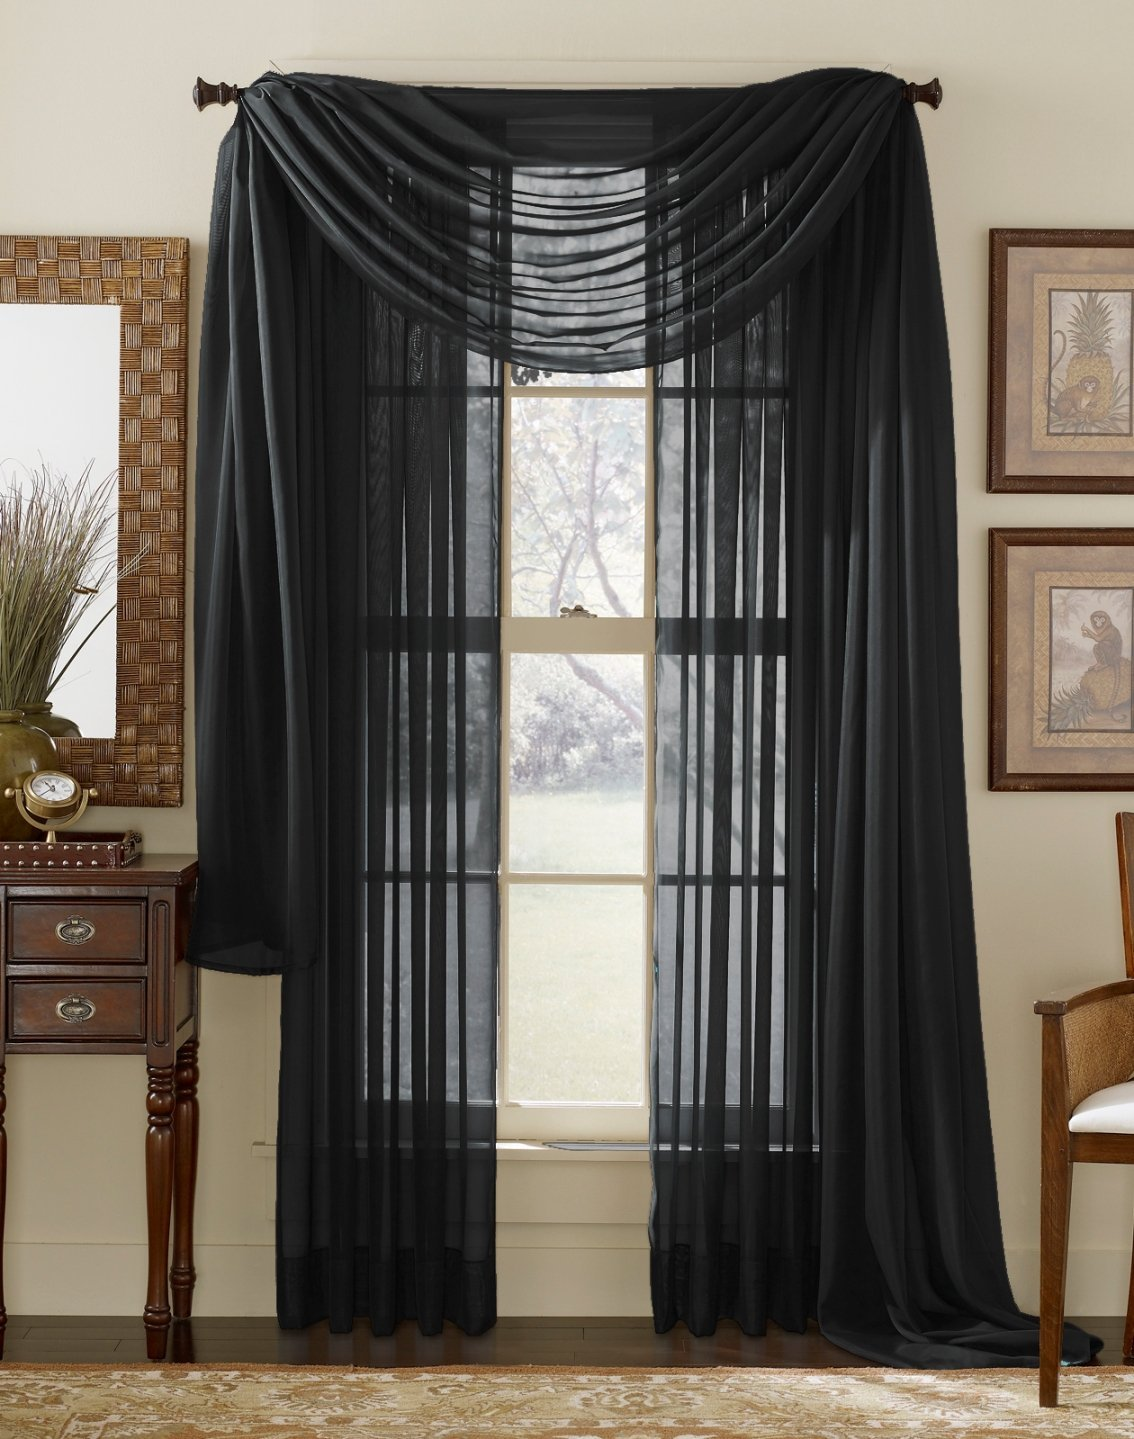 Luxury Discounts Beautiful Elegant Solid Black Sheer Scarf Valance Window Treatment Scarves